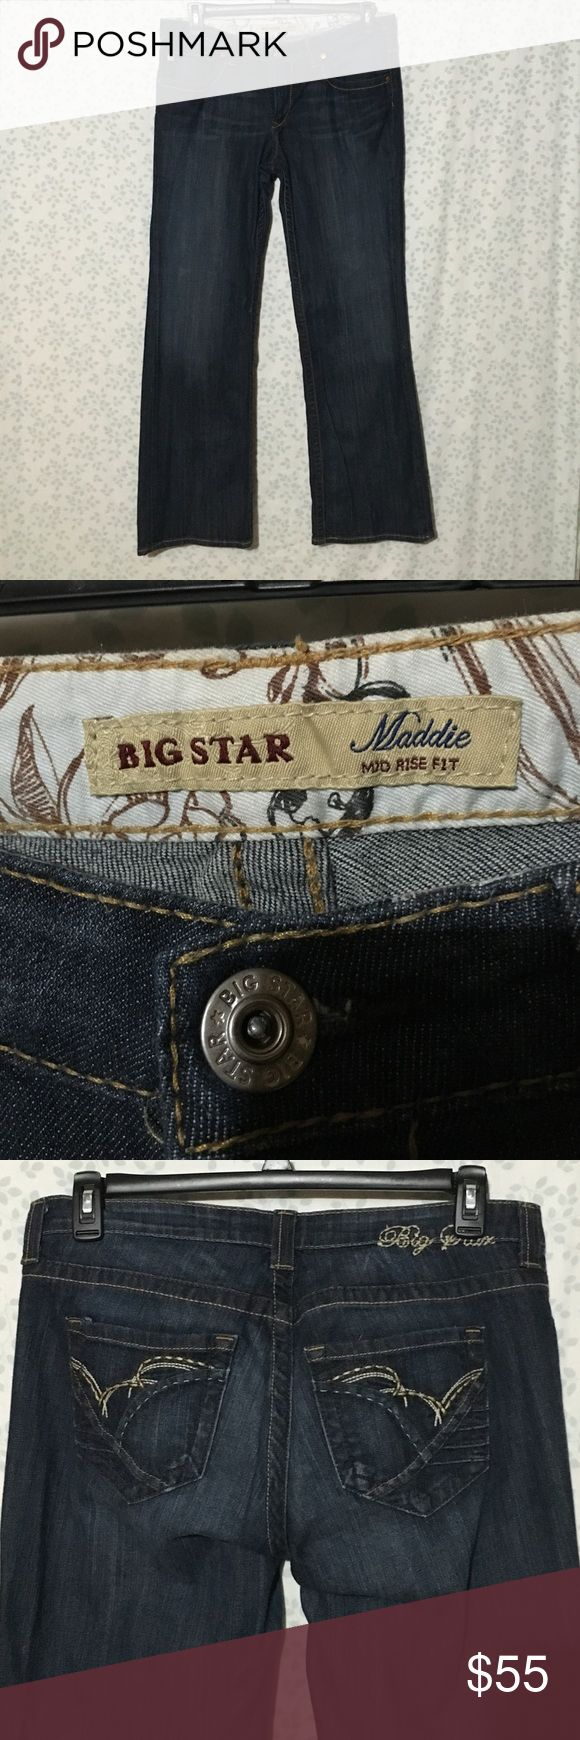 Big Star Maddie Mid Rise Jeans Big Star Maddie mid rise jeans in dark wash. Like new condition! Size 33R Big Star Jeans